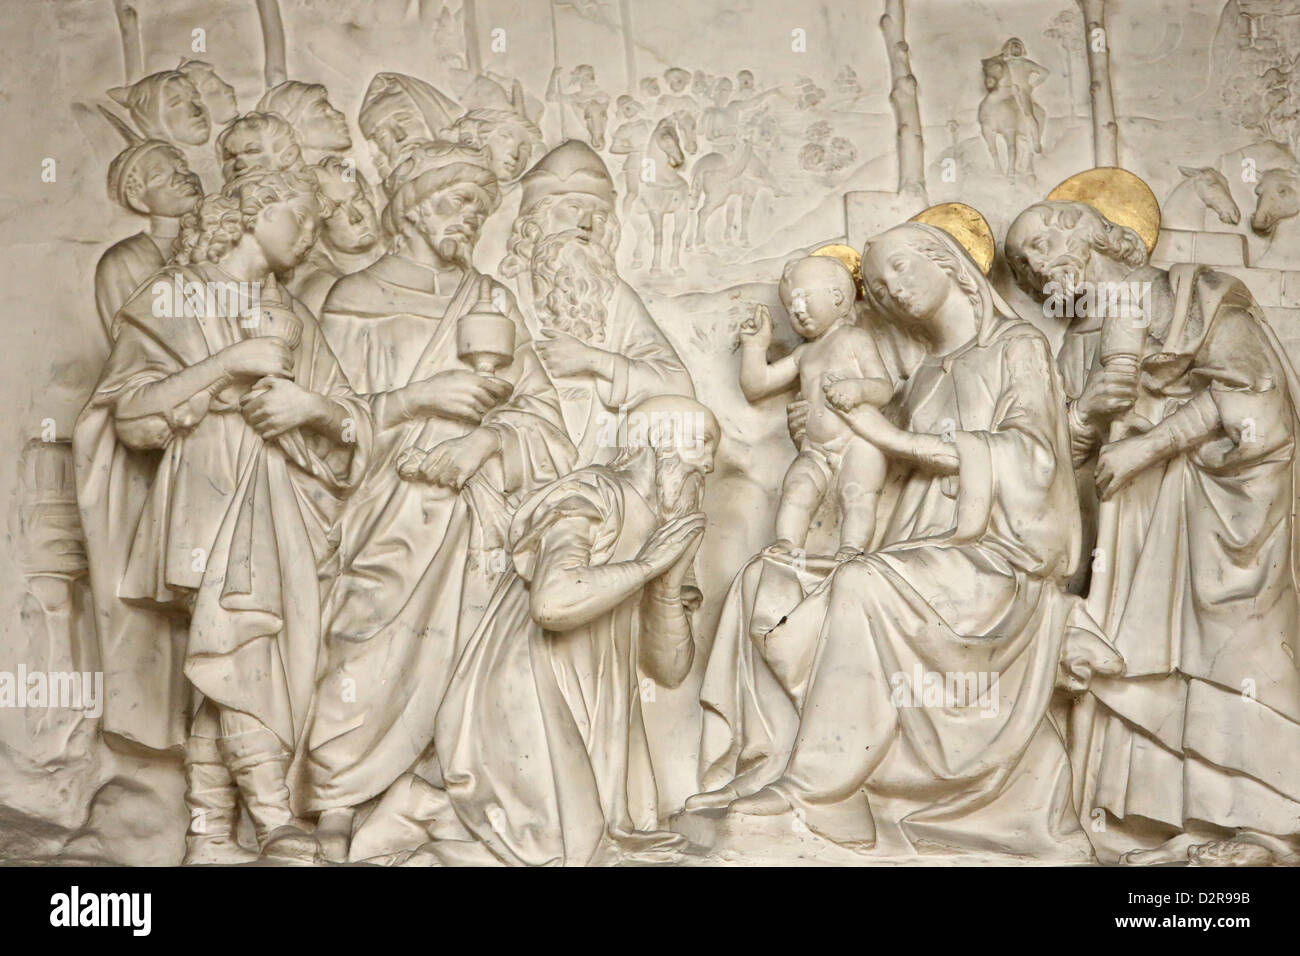 Adoration of the Magi, St. Germain l'Auxerrois church, Paris, France, Europe - Stock Image